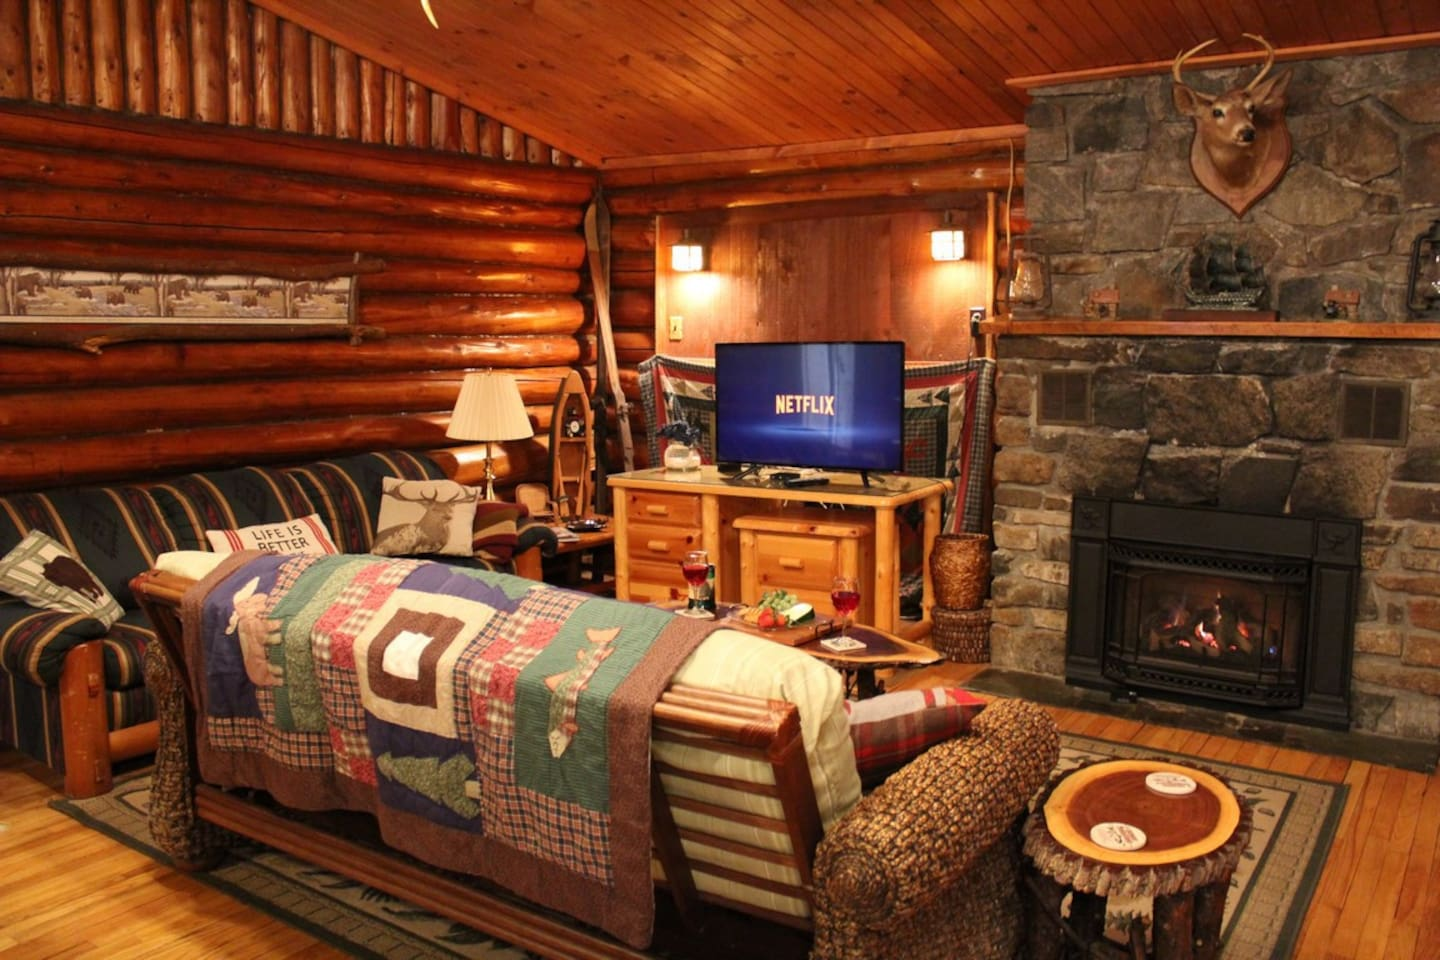 Enjoy cable and smart TV capabilities with Roku while getting cozy next to the gas fireplace!